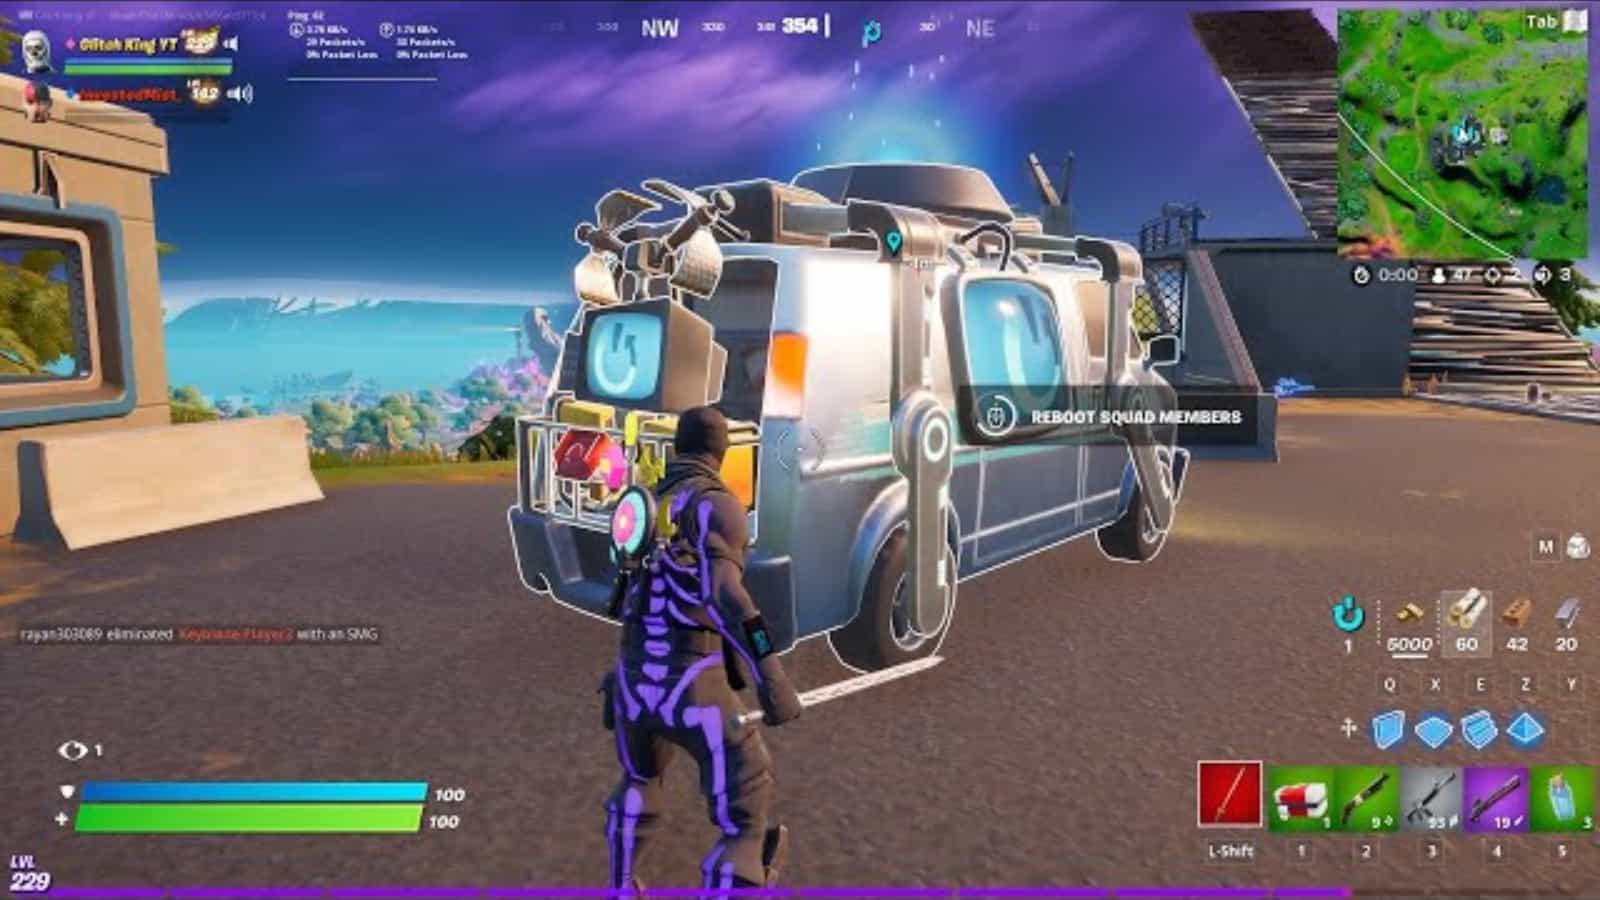 New Fortnite Reboot Van glitch gives players permanent mythic abilities